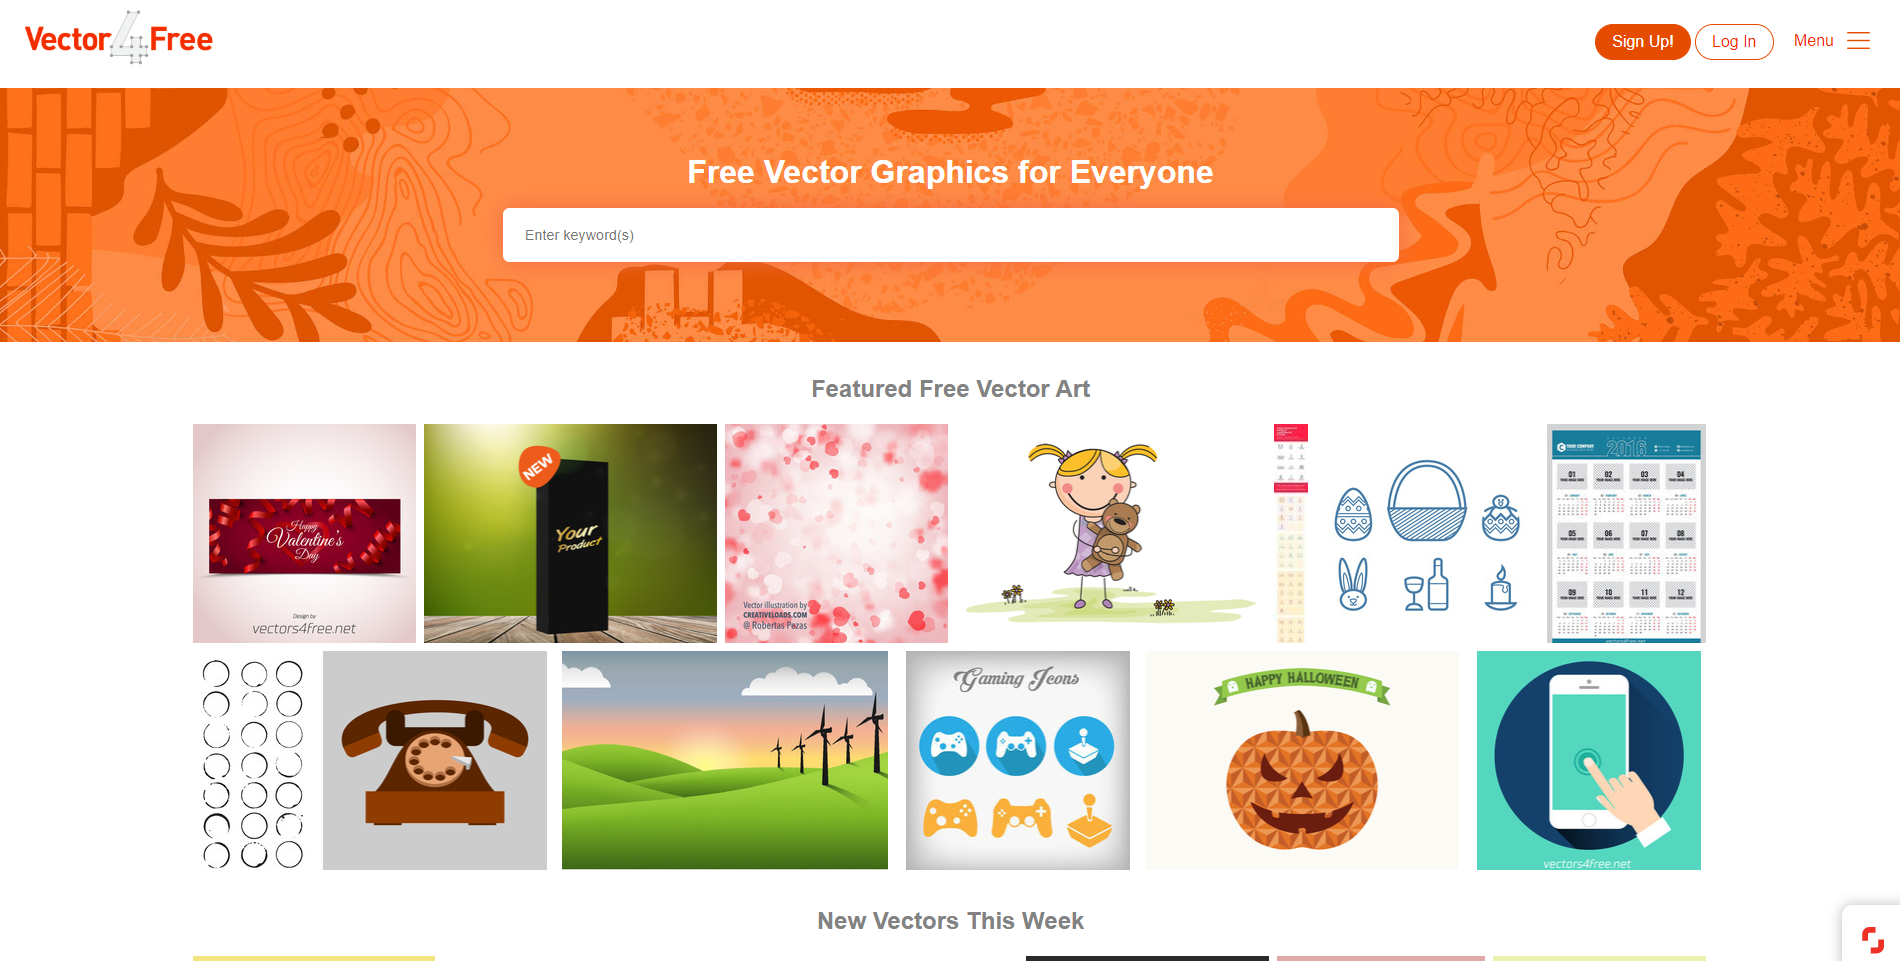 vectors 4 free website free vectors